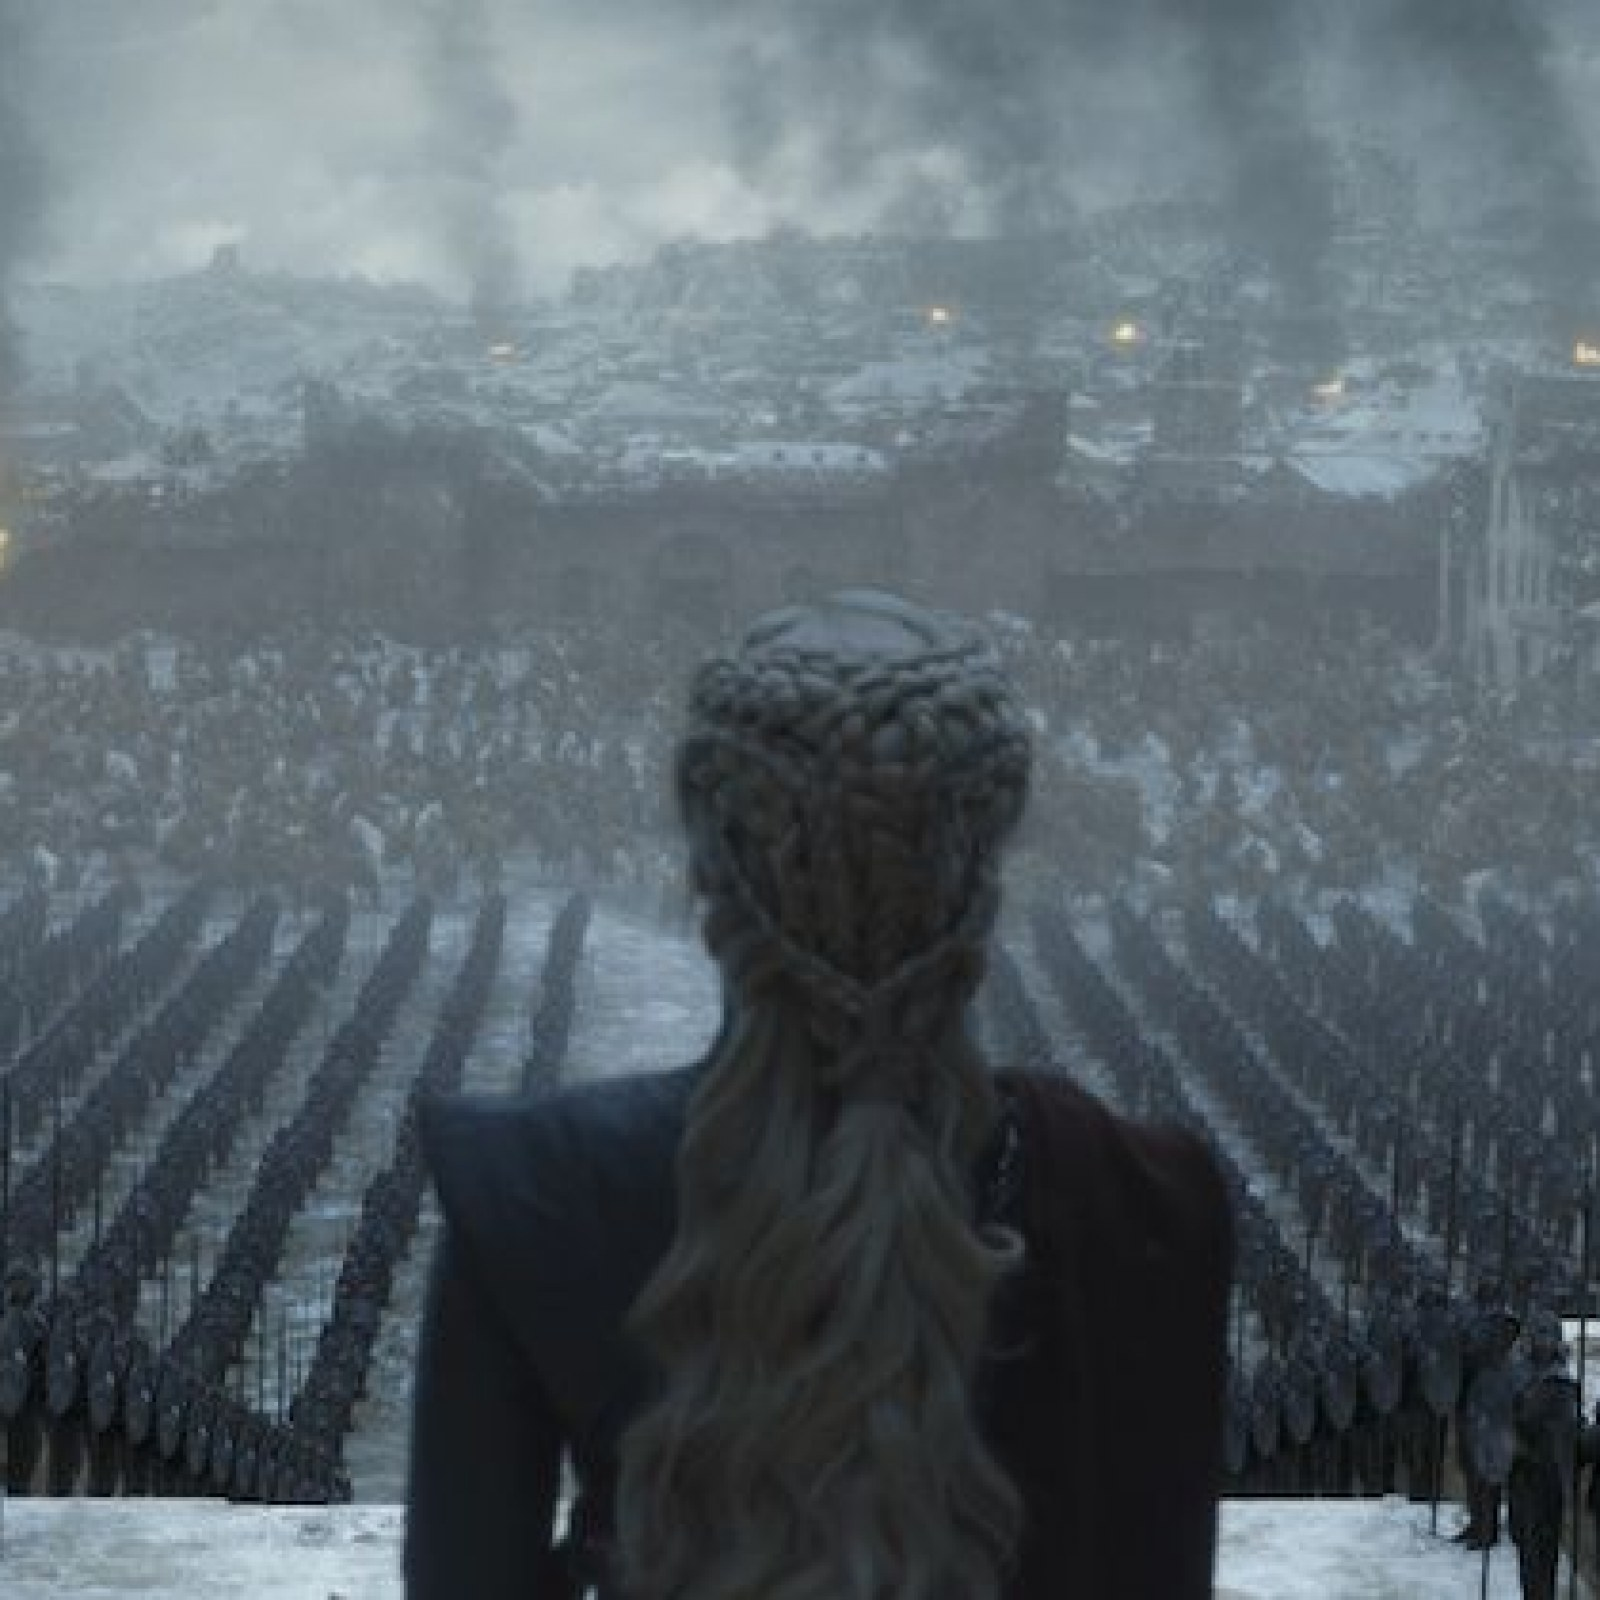 Game of Thrones' Season 8, Episode 6 Leaks: What Happens in the